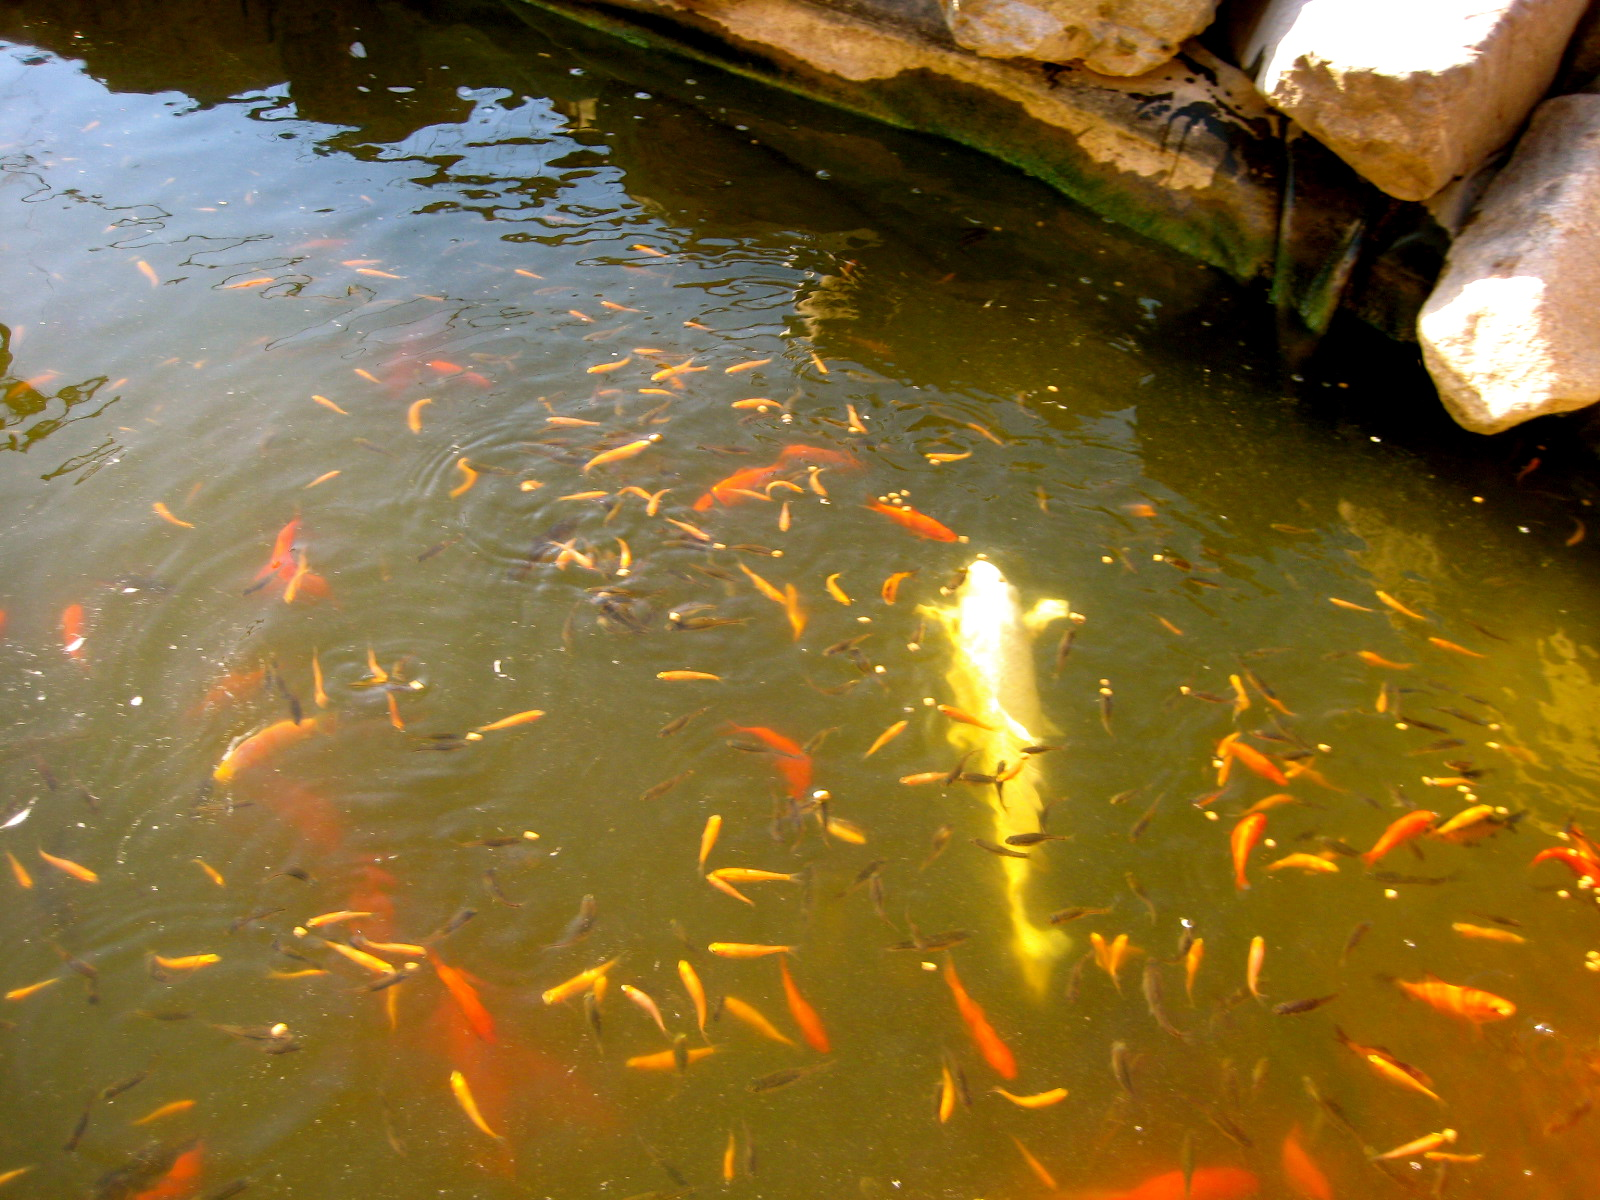 Sometimes larger koi will eat smaller koi.